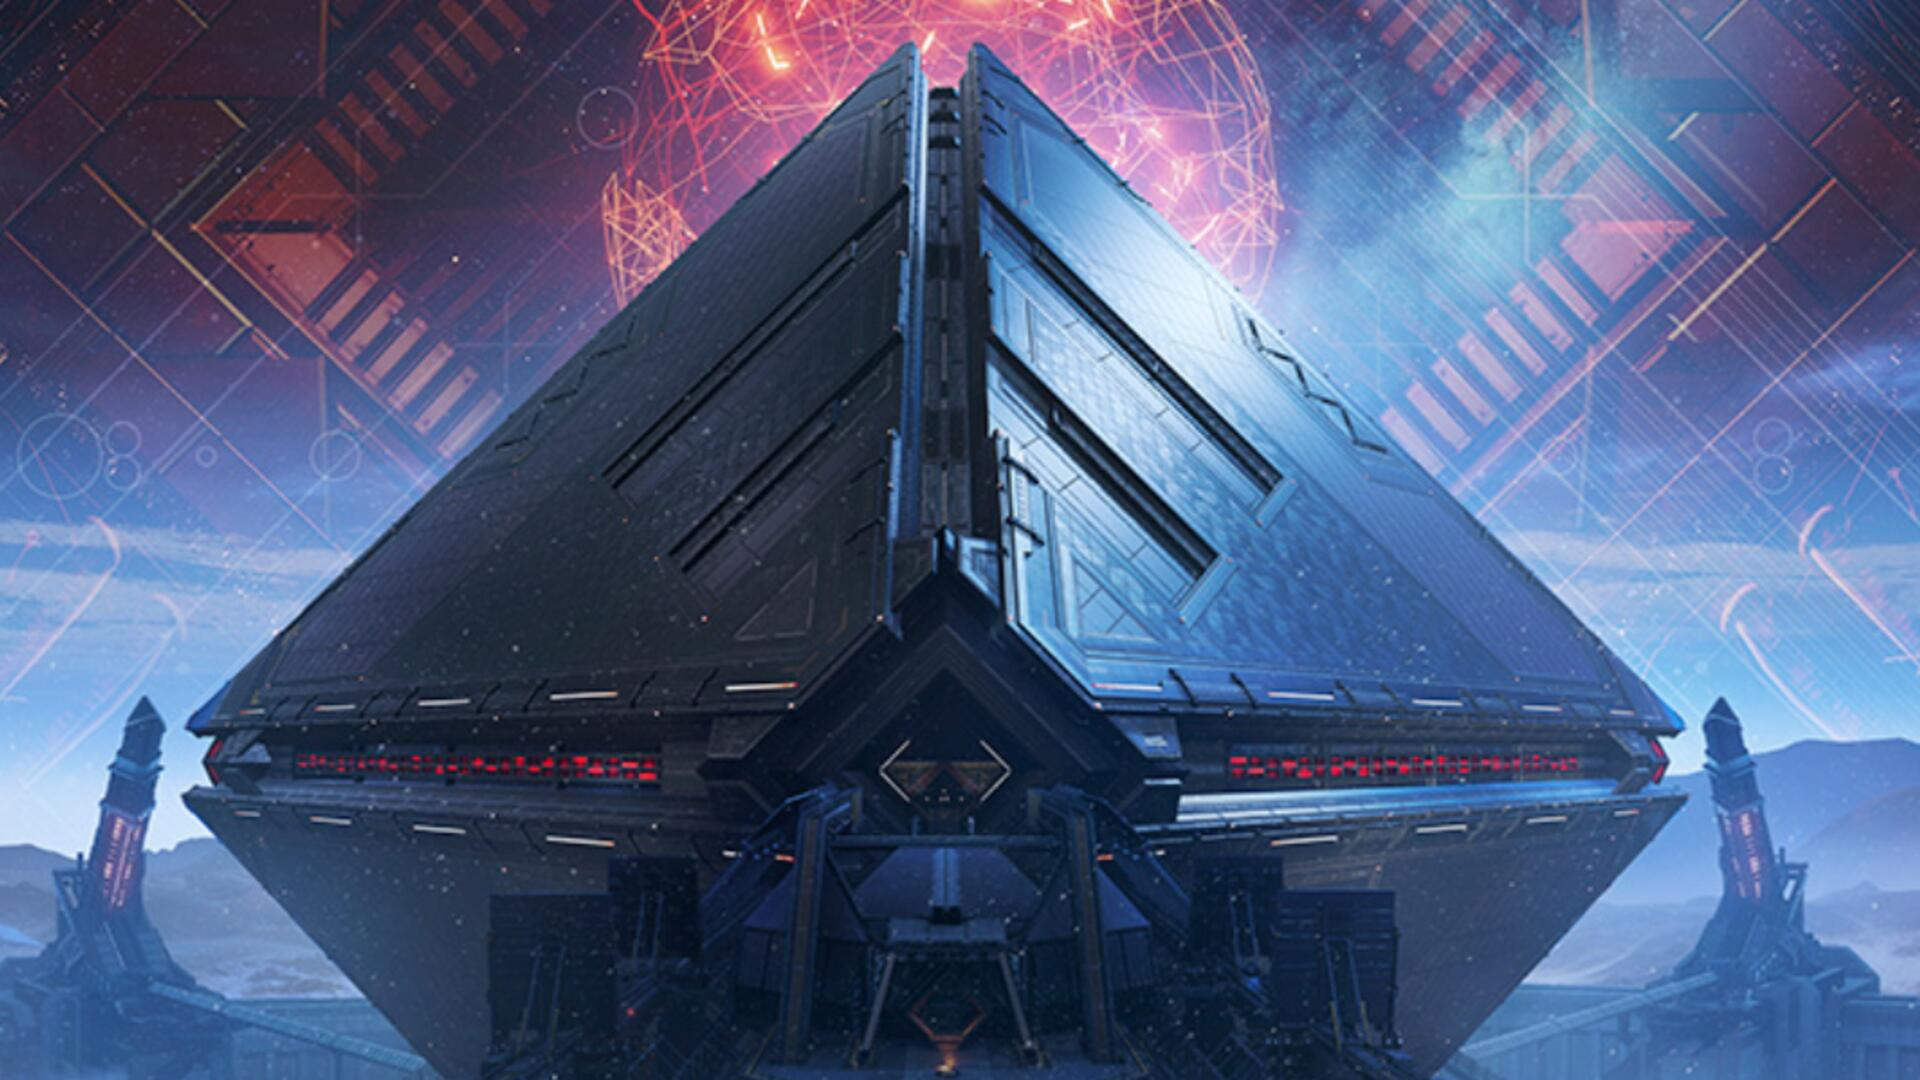 PSA: Destiny 2's Warmind Expansion Recommends a Power Level of 310 For its First Campaign Mission